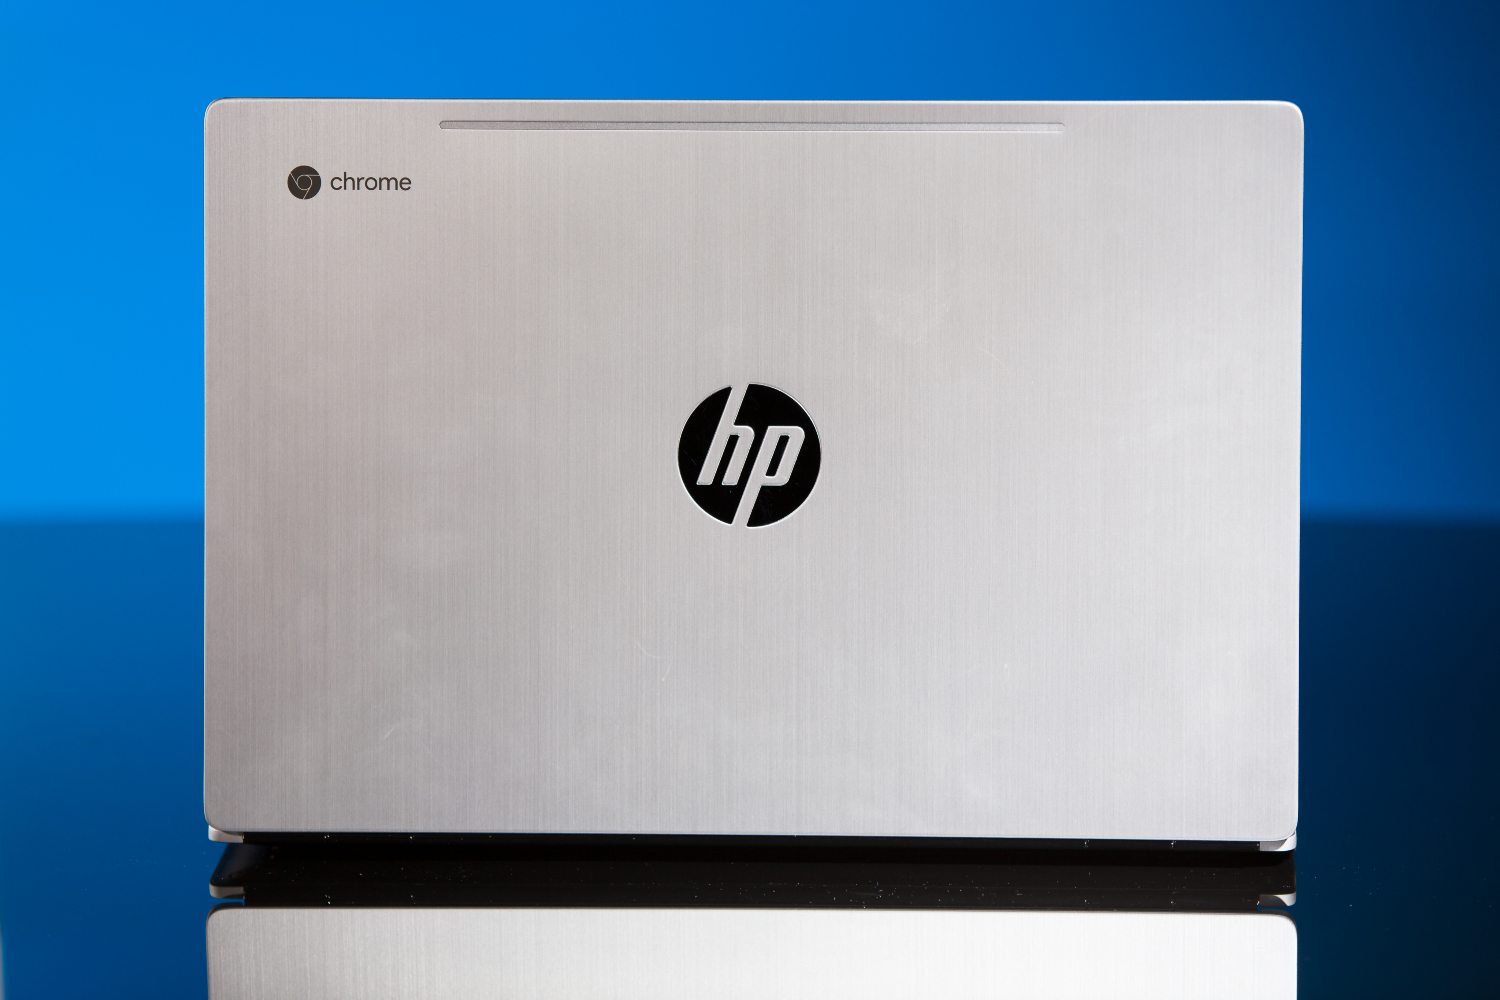 The lid on the HP Chromebook 13.